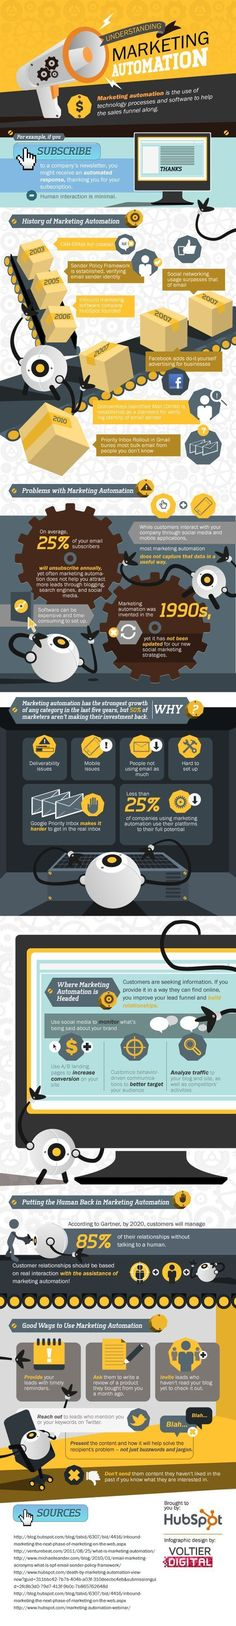 Discover How Marketing Automation & Sales Funnels Drive Business Growth   Digital Marketing infographic